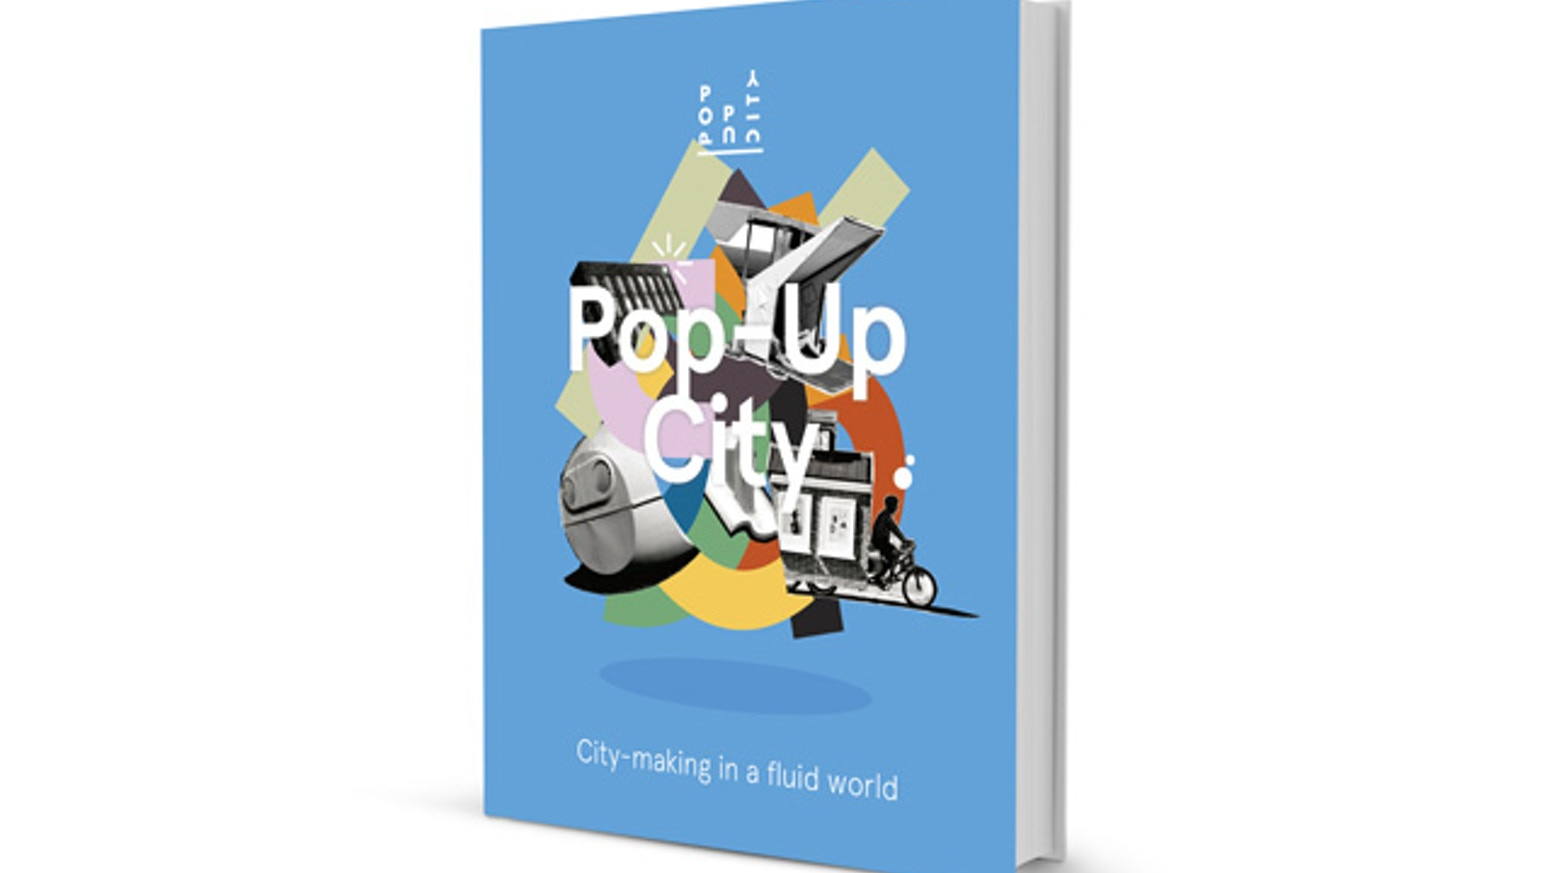 Based on 5 years of insights from blogging, Pop-Up City presents a book about creative ideas for cities in a fluid world.